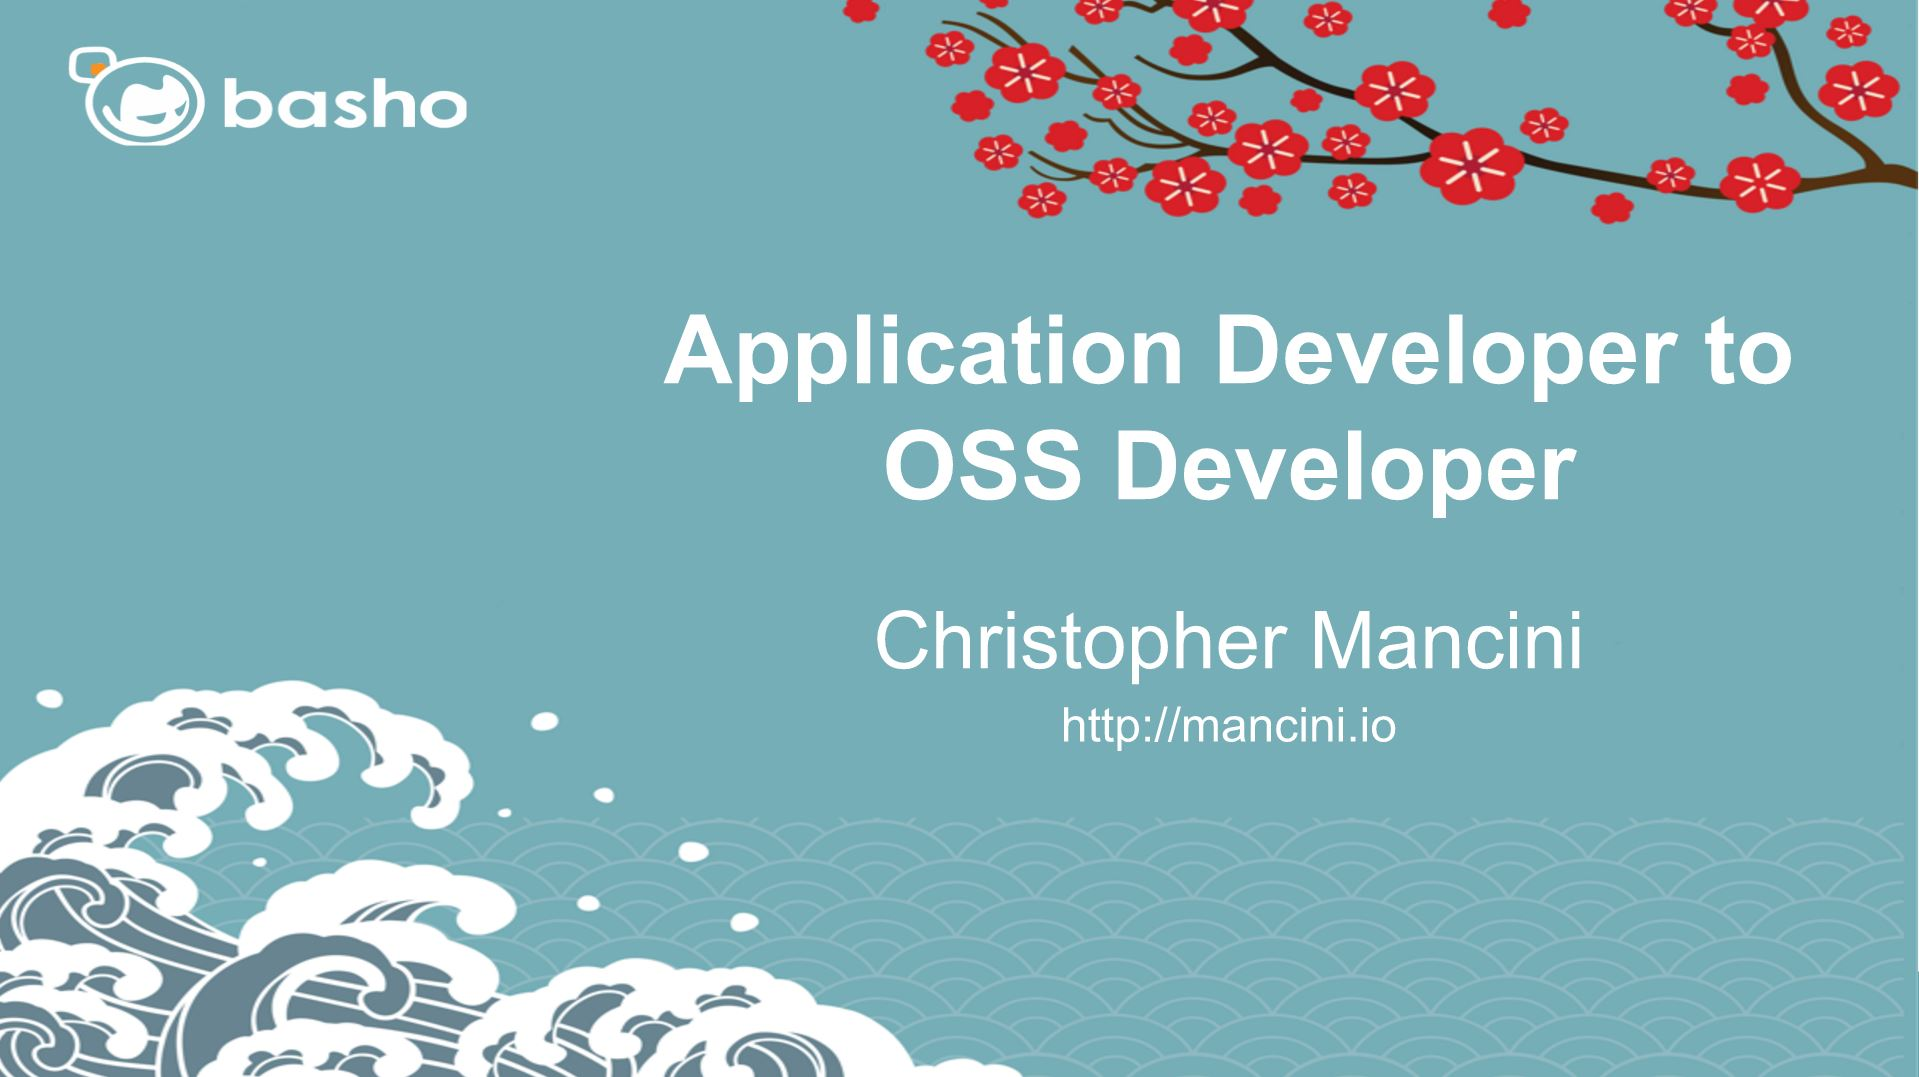 Appplication Developer to OSS Developer